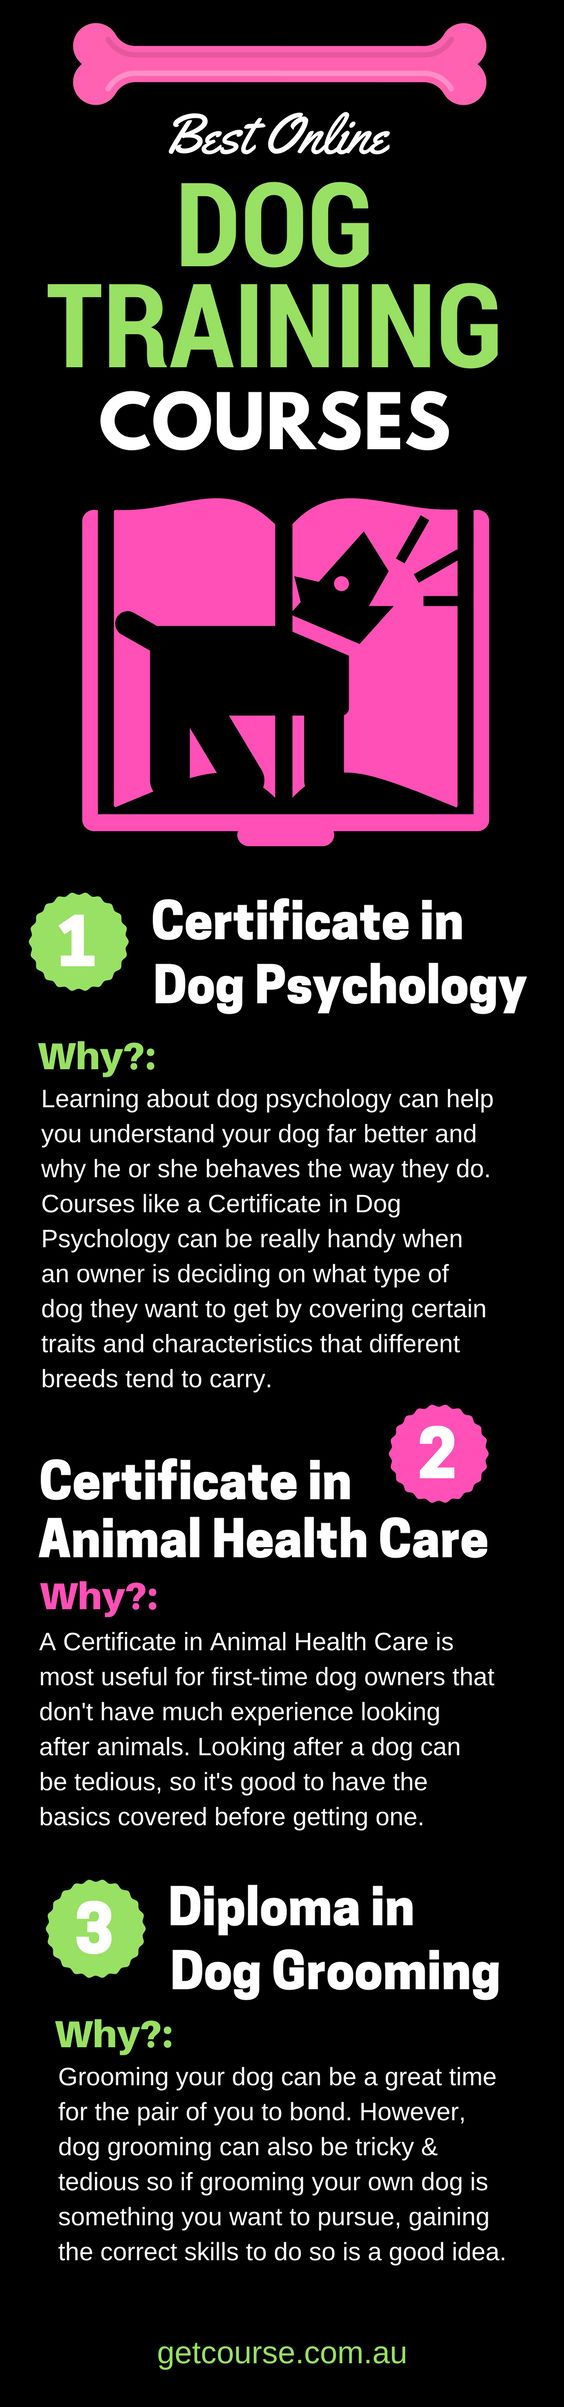 Best Online Dog Training Courses Why